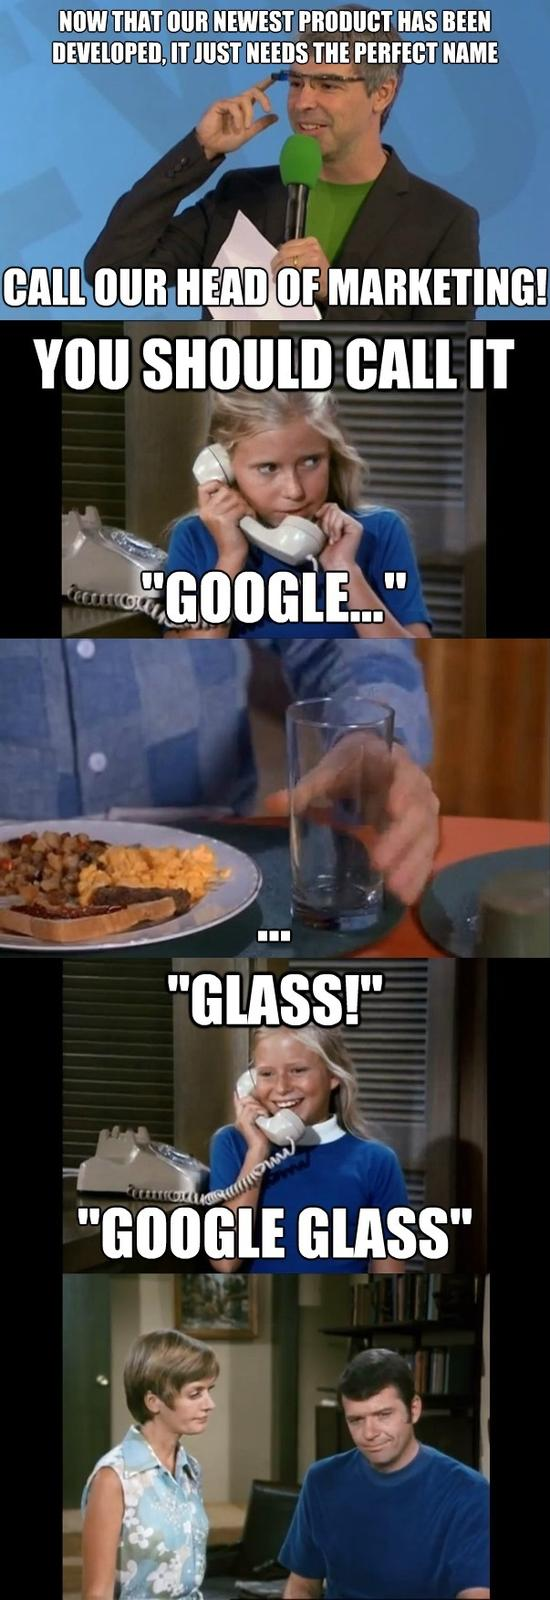 Naming of Google Glass